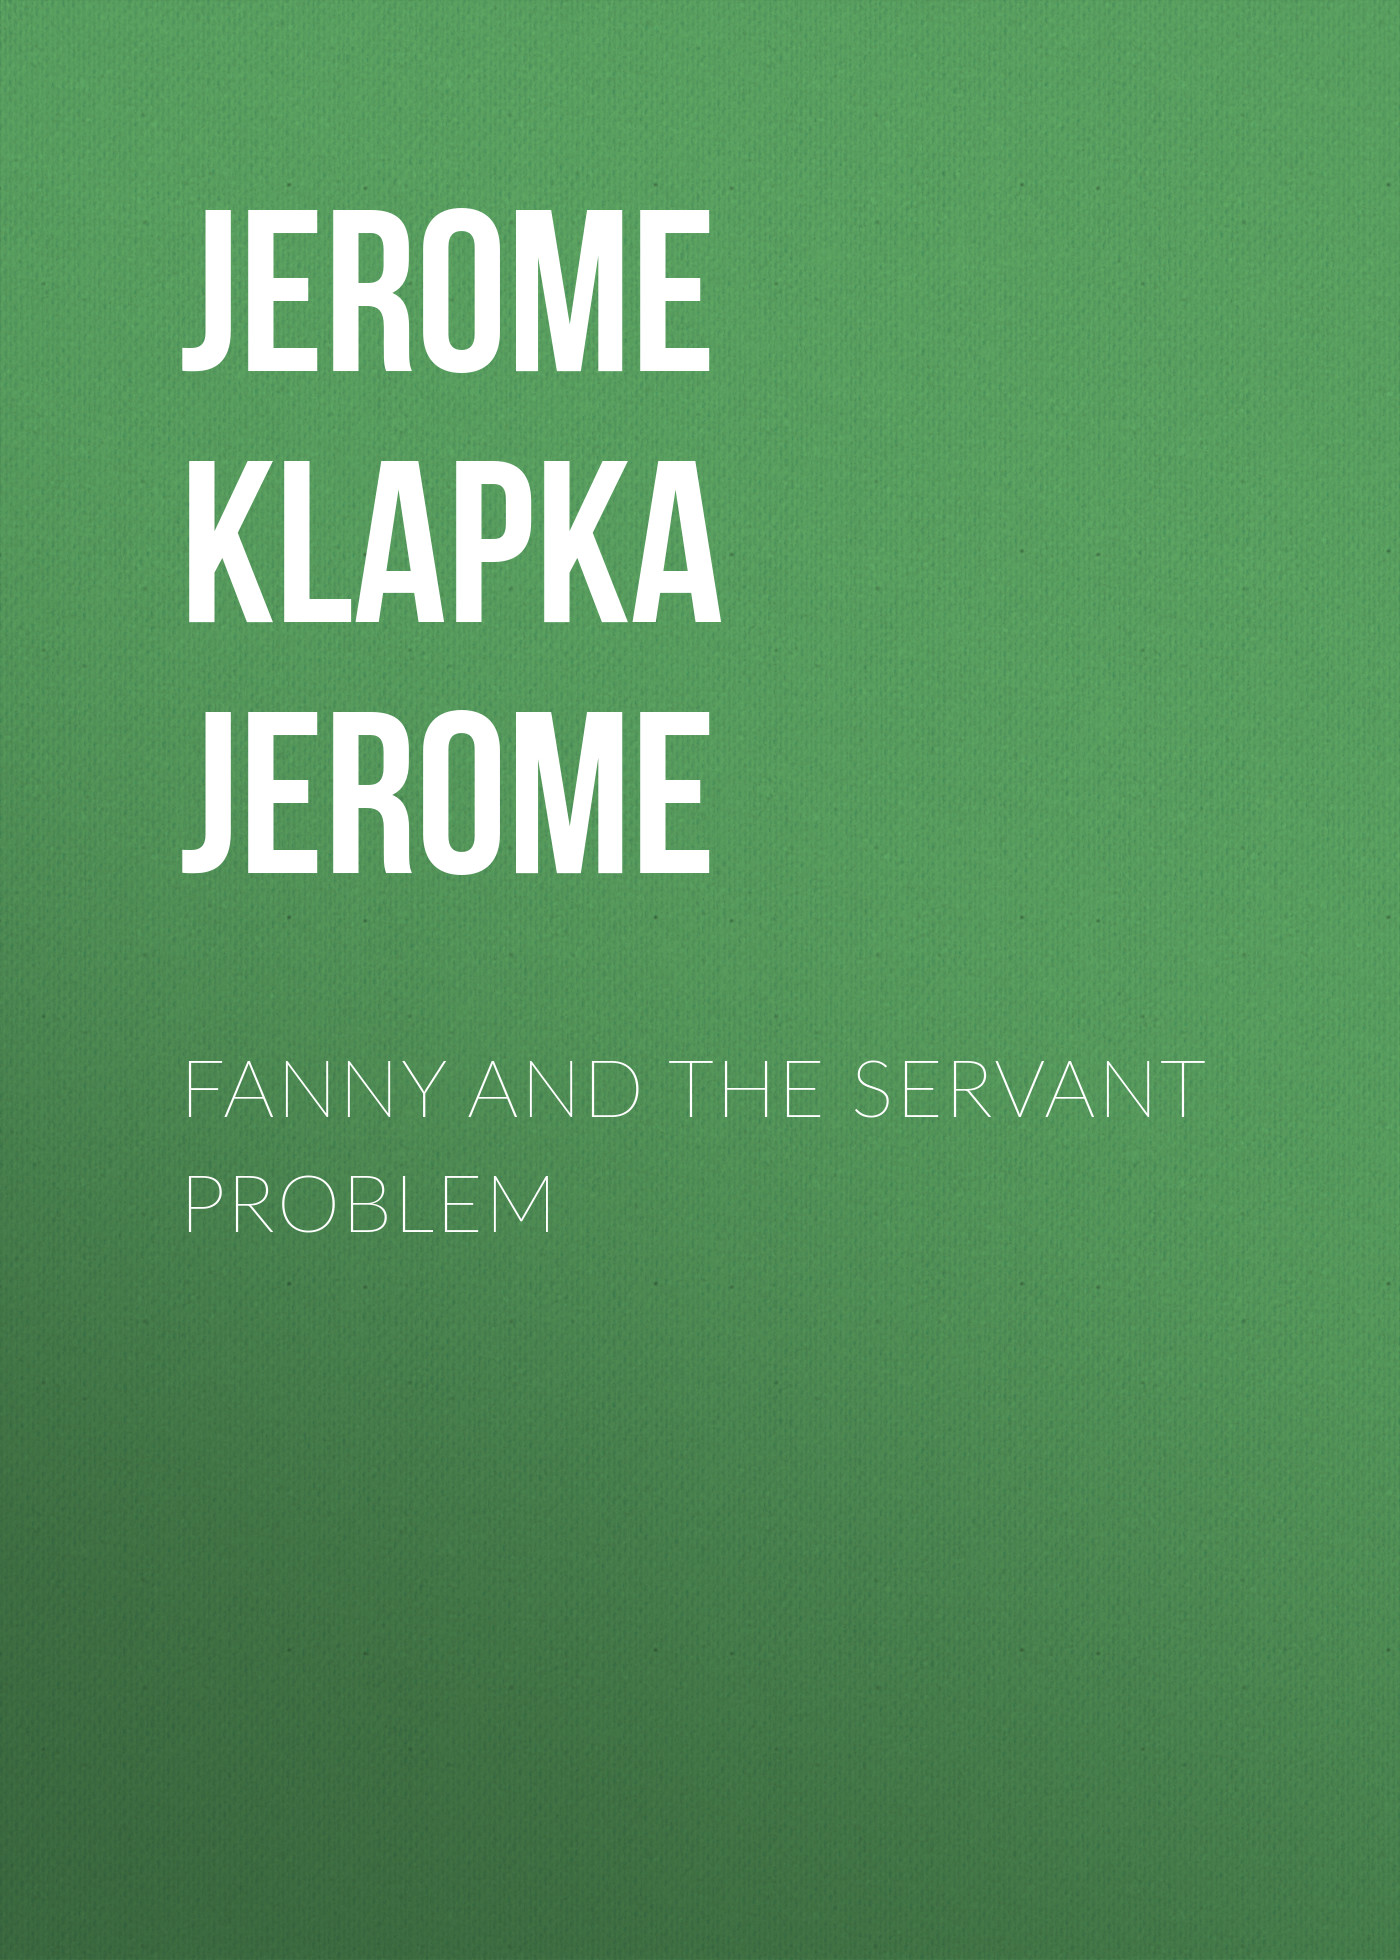 Джером Клапка Джером Fanny and the Servant Problem джером клапка джером evergreens